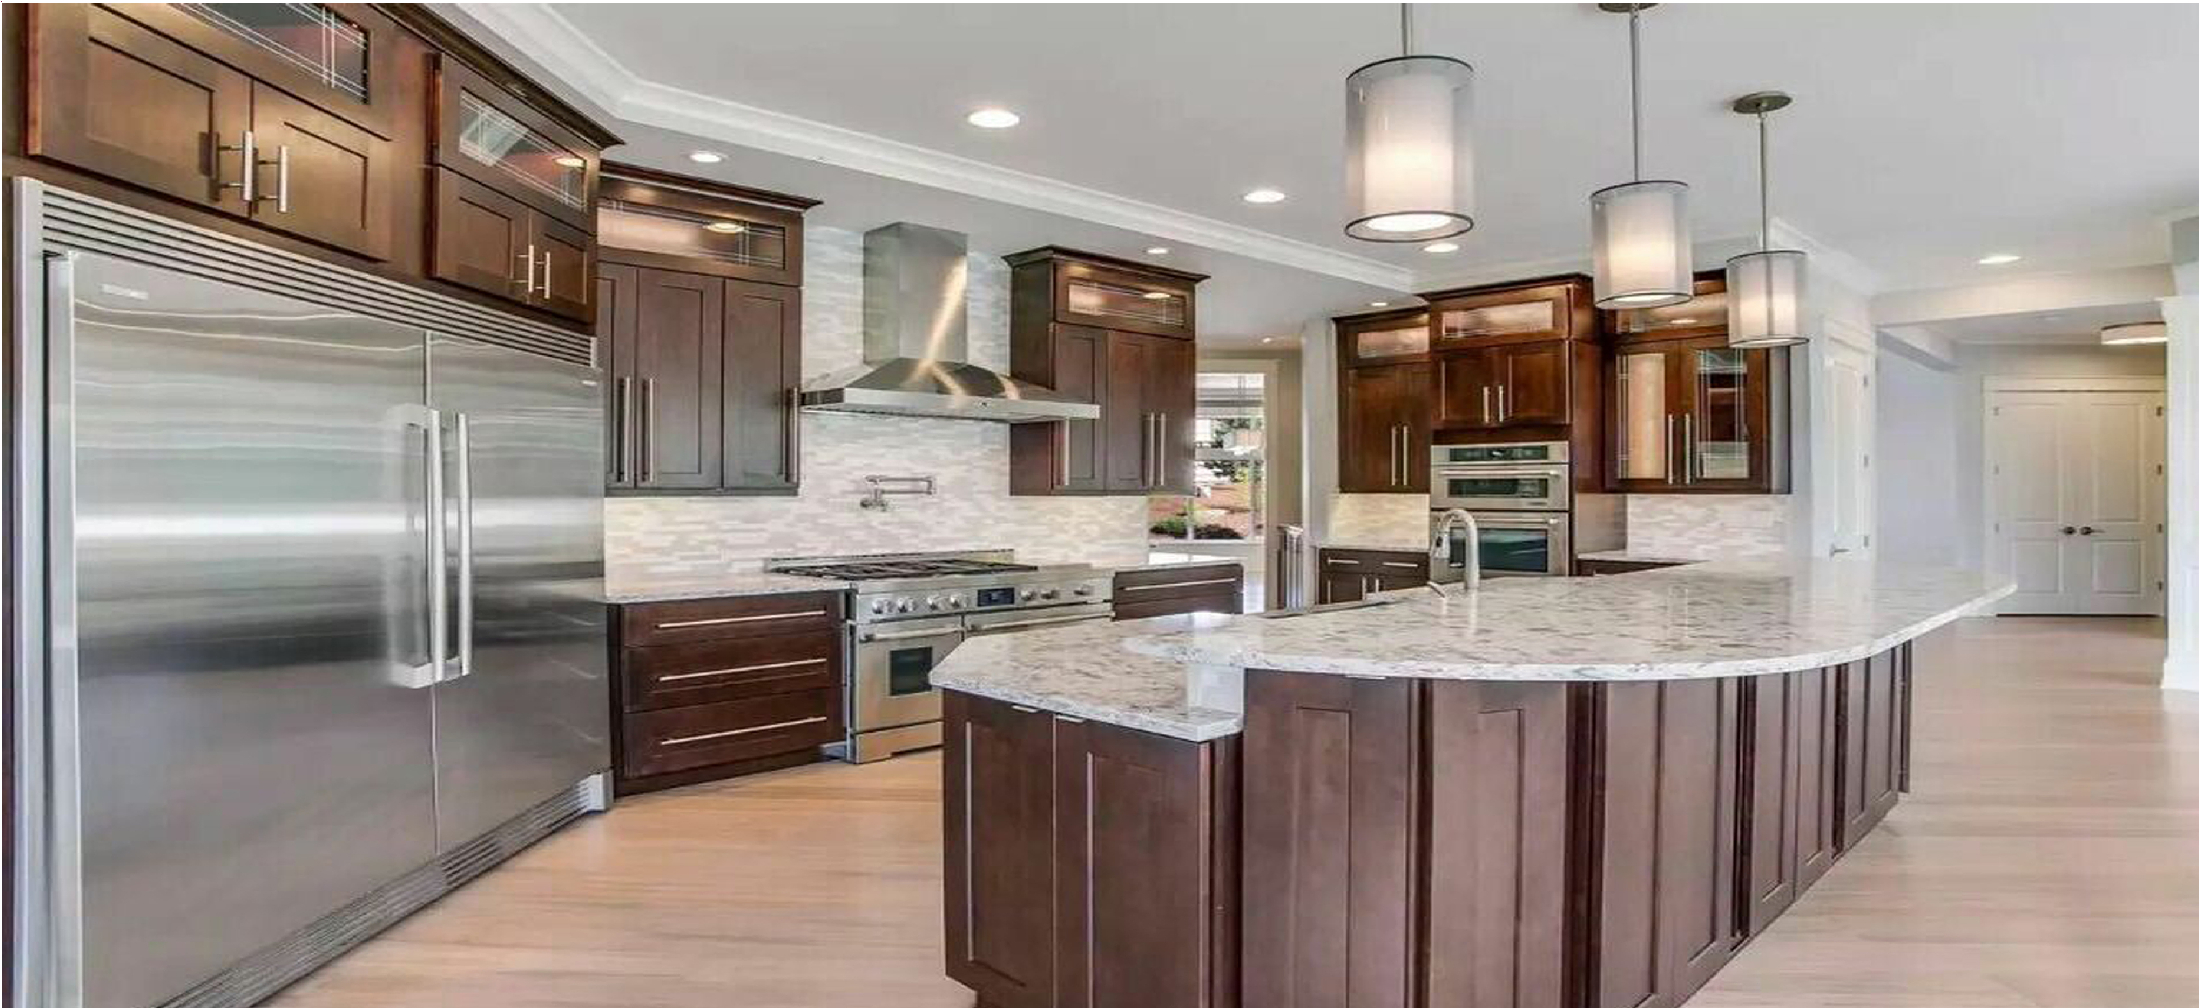 High Quality Cabinets & Granite Countertops | Lincoln, Ne Pertaining To Most Recently Released Upland Marble Kitchen Islands (Photo 20 of 25)